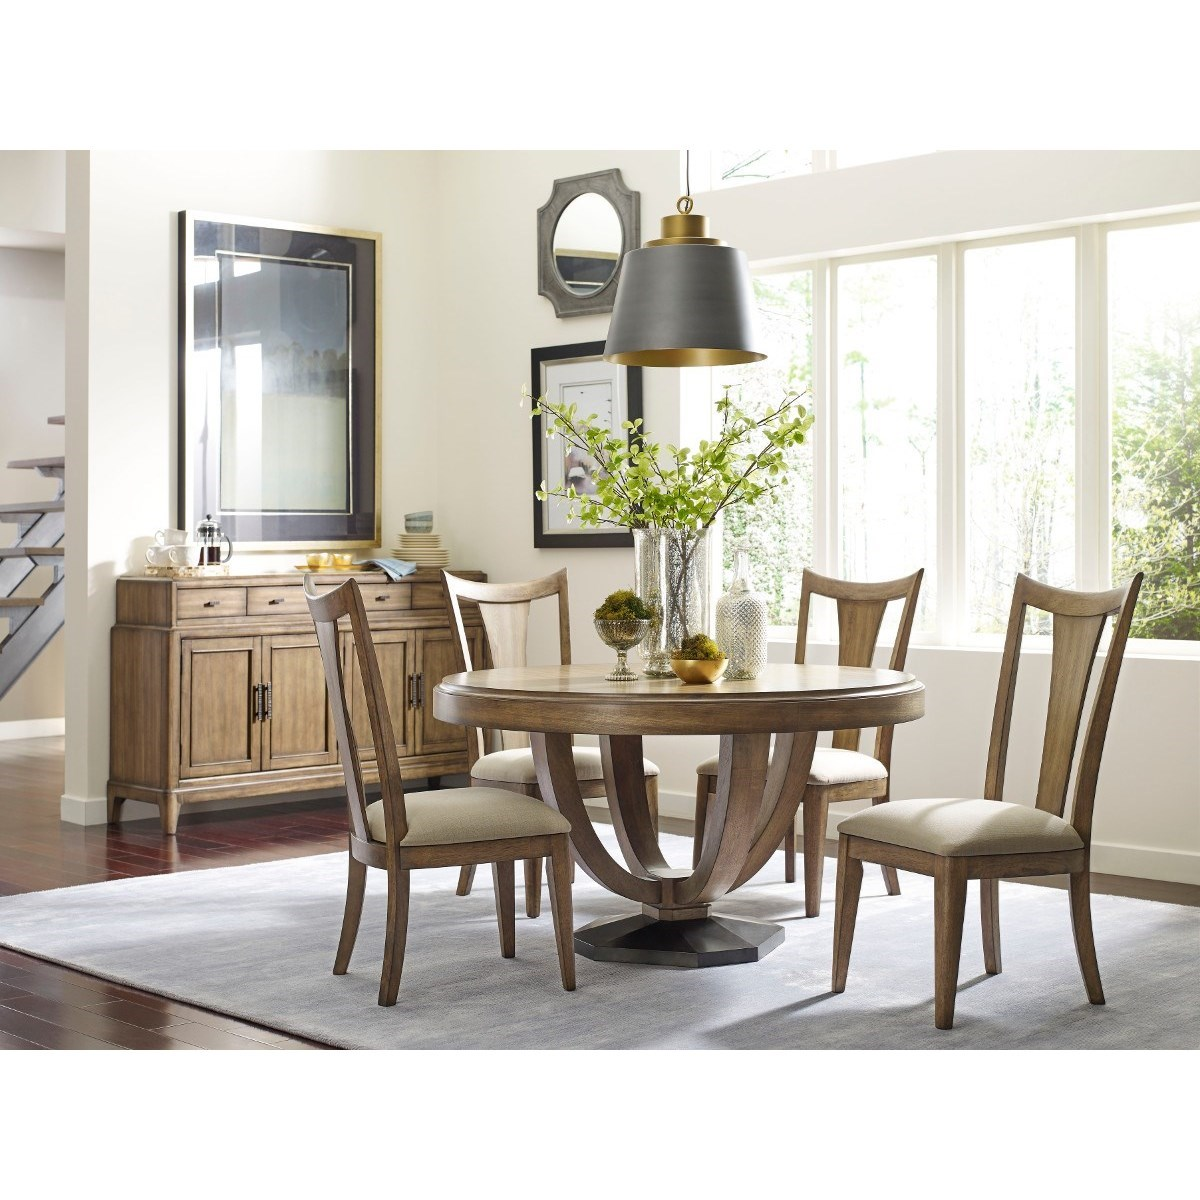 American Drew EVOKE  Casual Dining Room Group - Item Number: 509 Dining Room Group 3